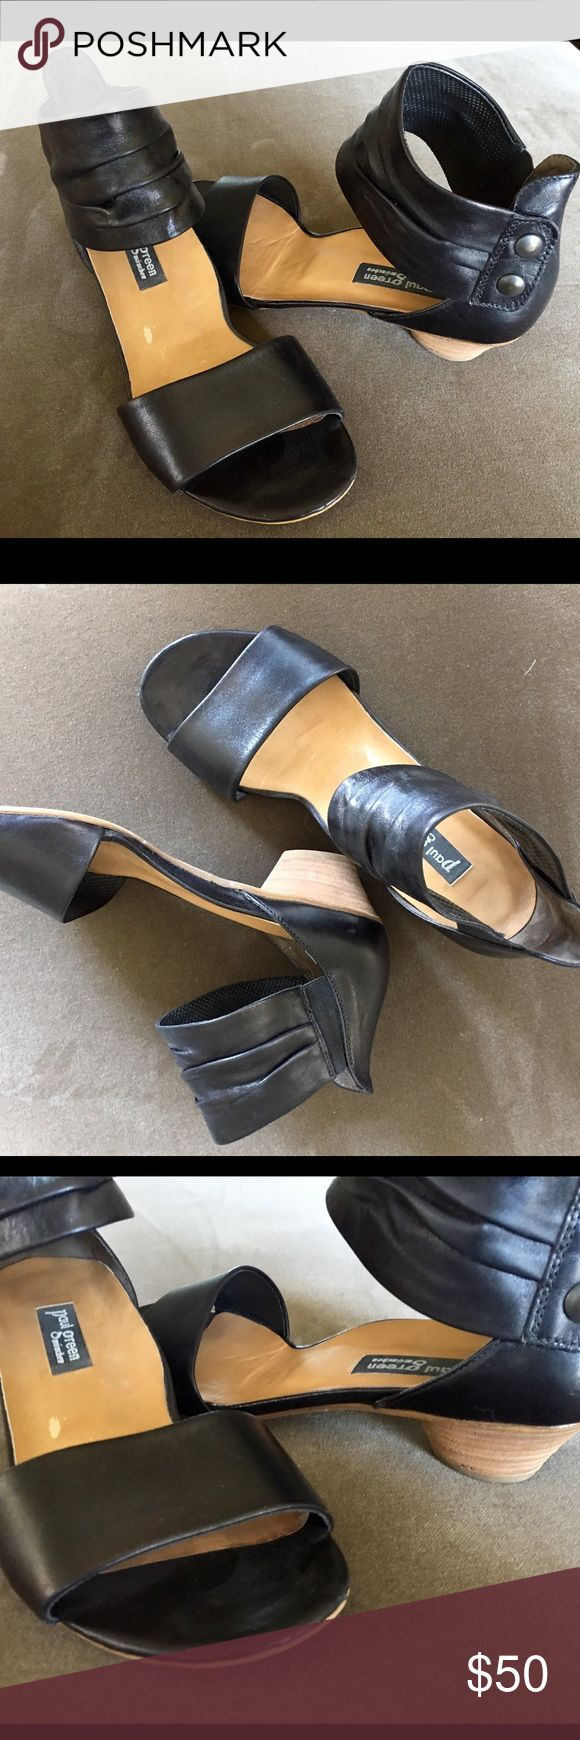 """Paul Green sandals These are Paul Green black sandals with ankle detail. Hardly worn. Fun heel. These are hand made and from Germany. I have a pair of their boots which will go soon. I have to many SHOES! They say size 5 1/2 which equals 8 in US  """" At Paul Green our brand stands for hand crafted artisan quality women's shoes. We were founded in Munich in 1988 and today are at home in Mattsee near Salzburg, Austria."""" This is from their website. Paul Green Shoes Sandals"""